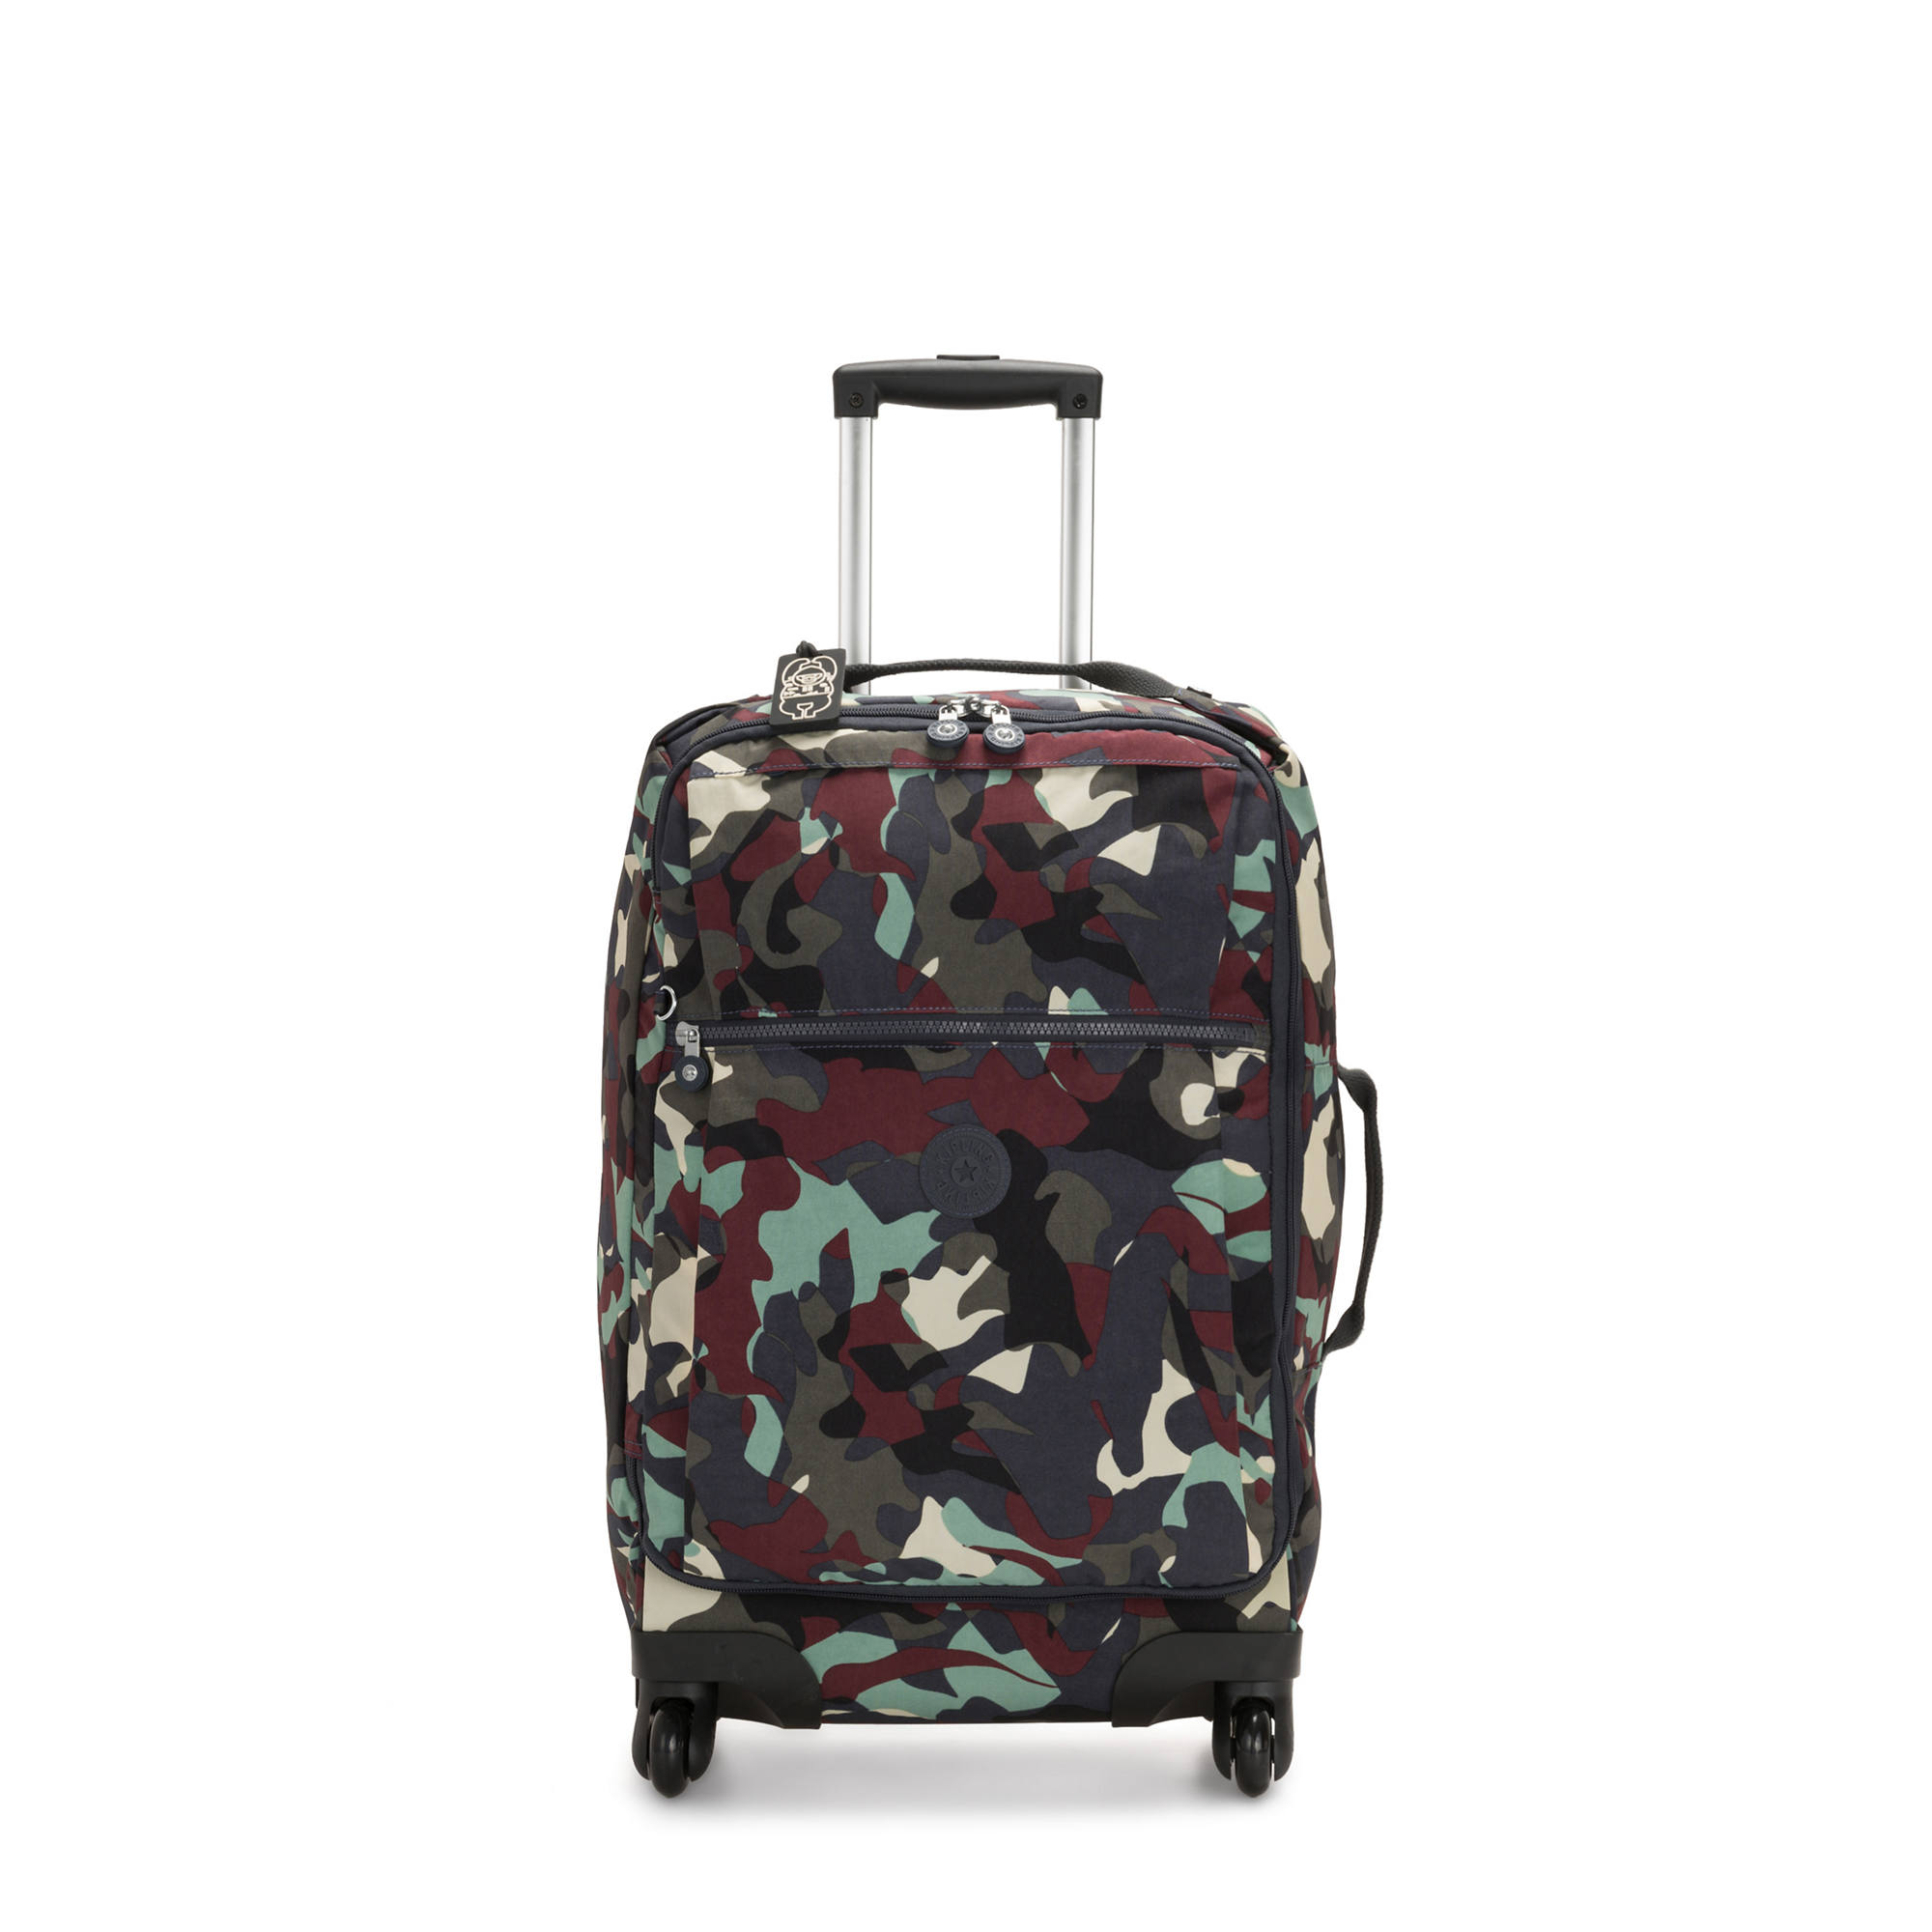 Kipling Small Carry-On Rolling Luggage